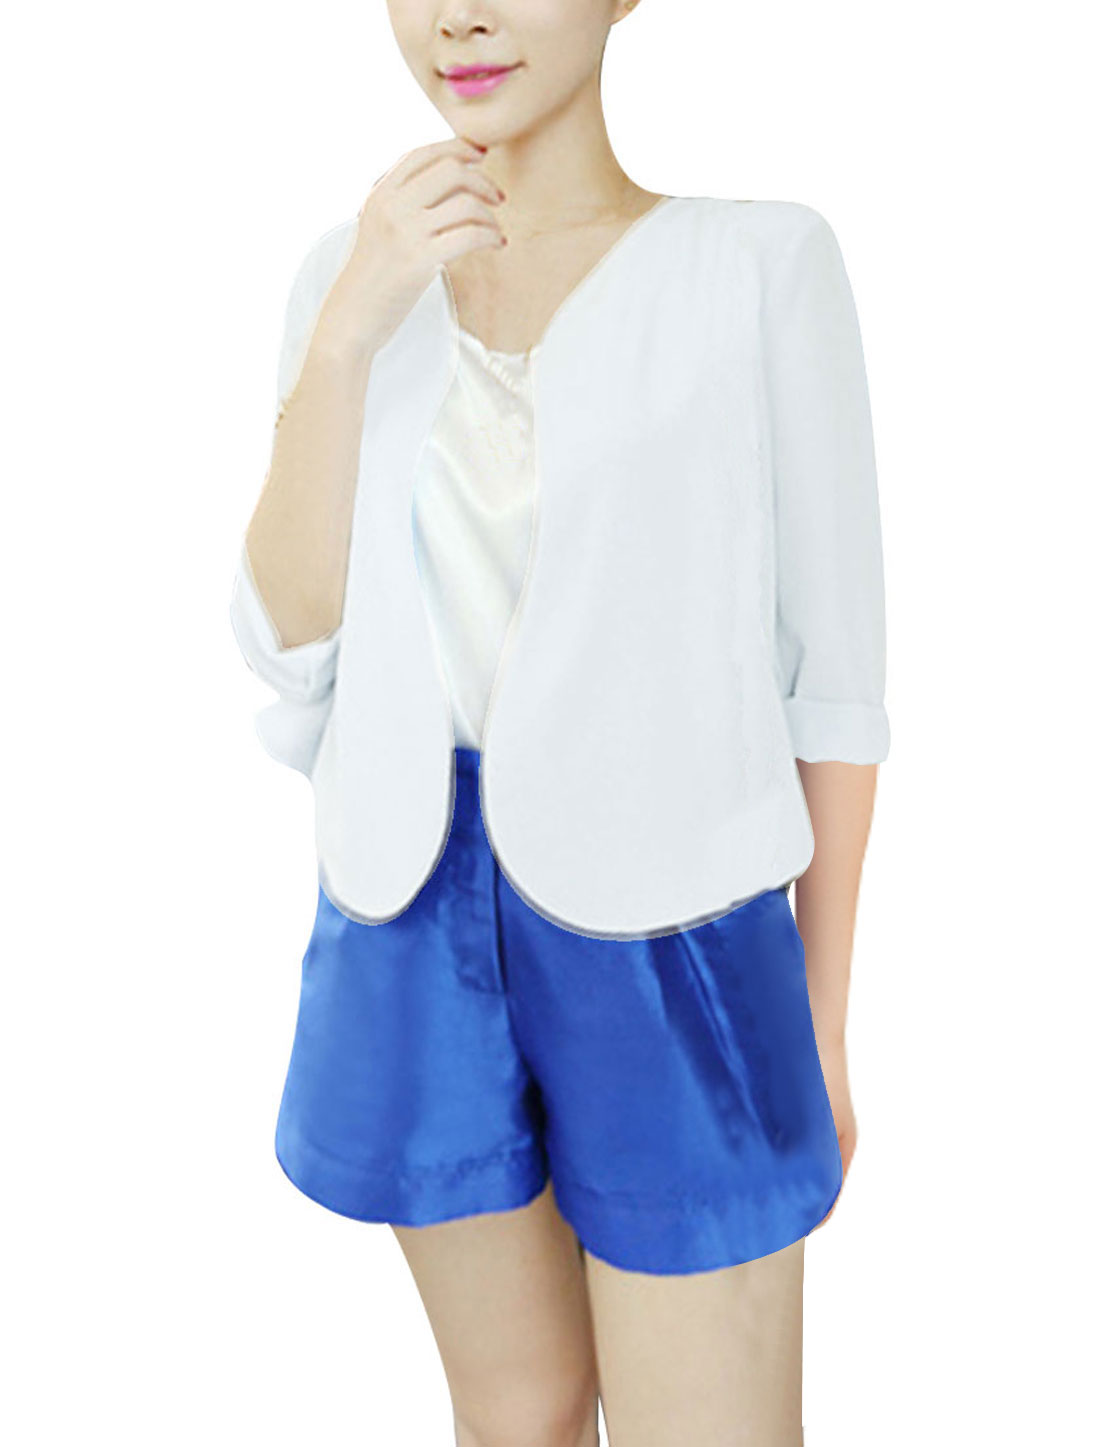 Woman Chic 3/4 Sleeve Front Opening Design White Chiffon Cardigan Coat XS